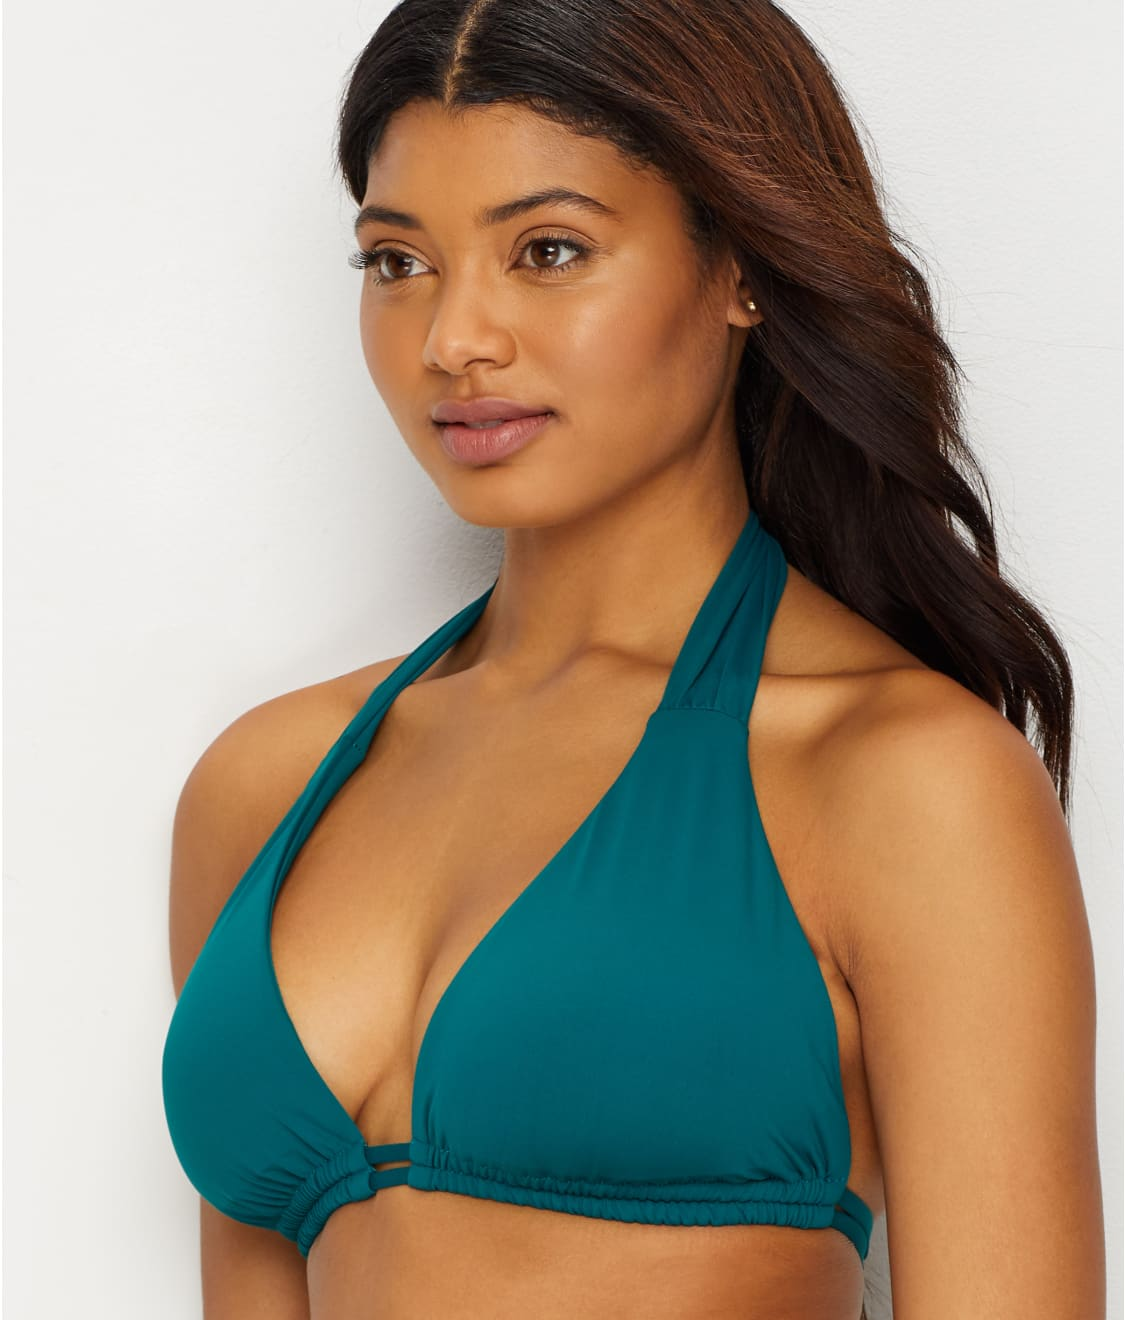 4b8fccaddf See Color Code Bikini Top D-DDD Cups in Fern